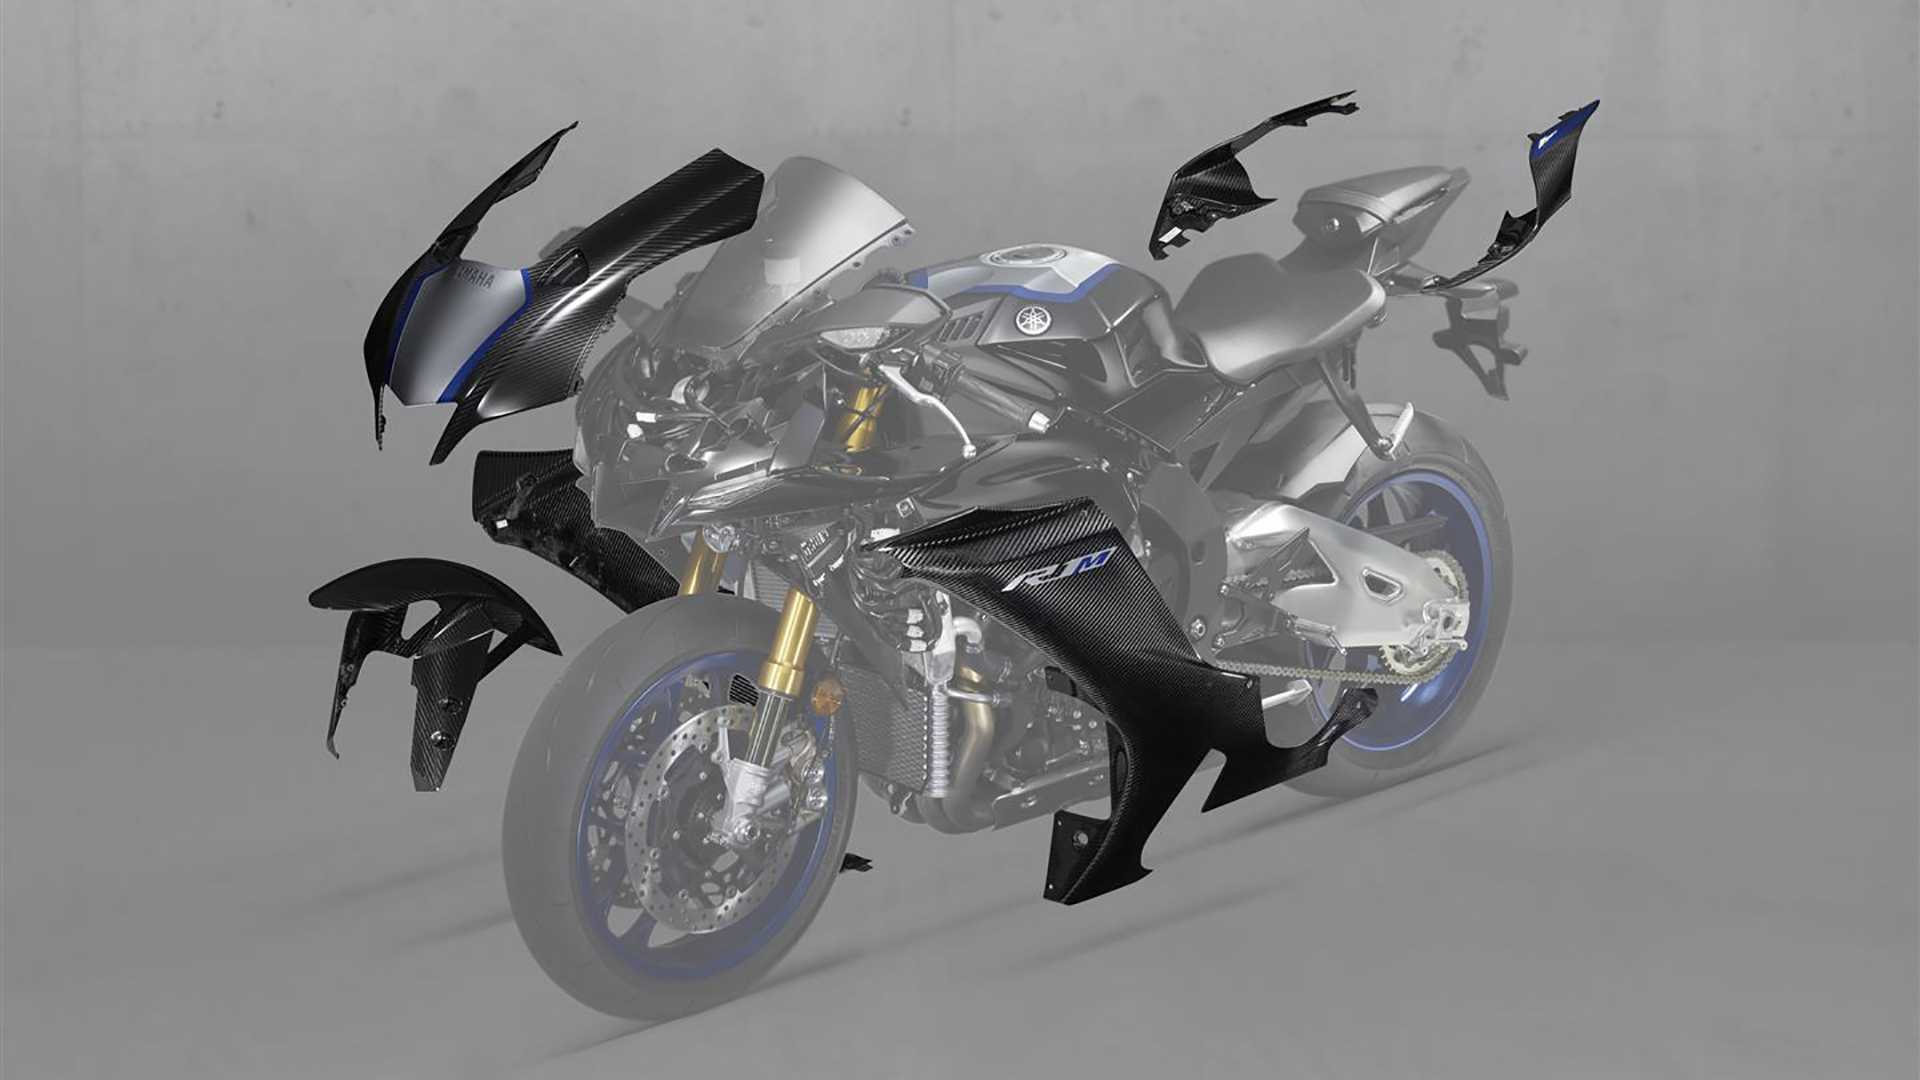 2020 Yamaha YZF-R1 And YZF-R1M: Everything We Know